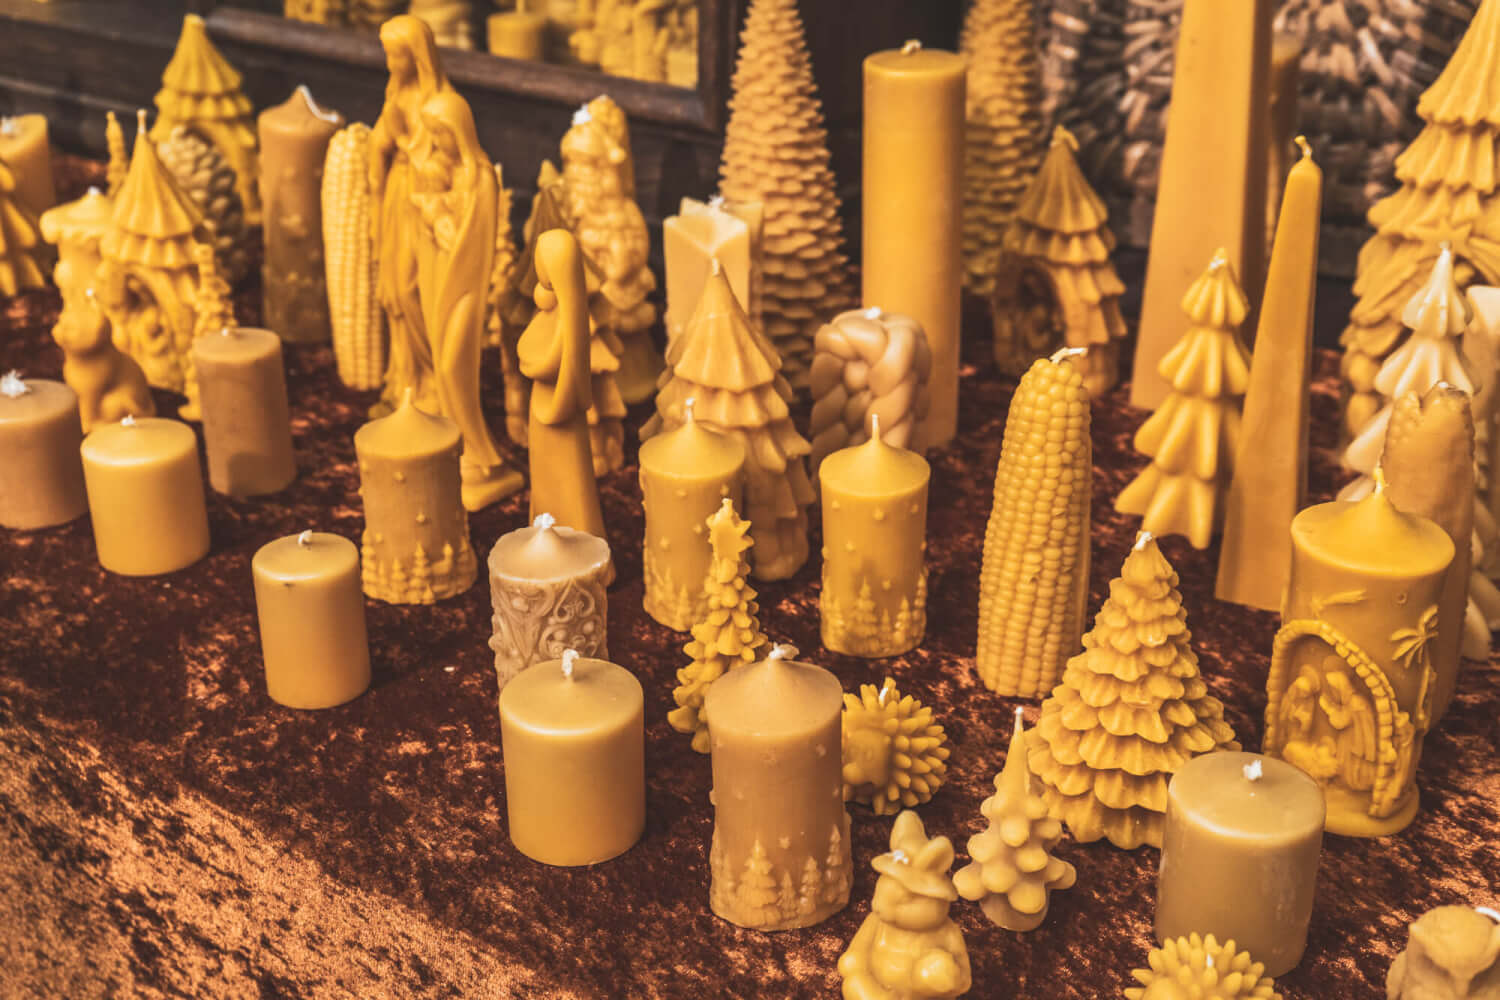 Carved candles at Dortmund Christmas Market